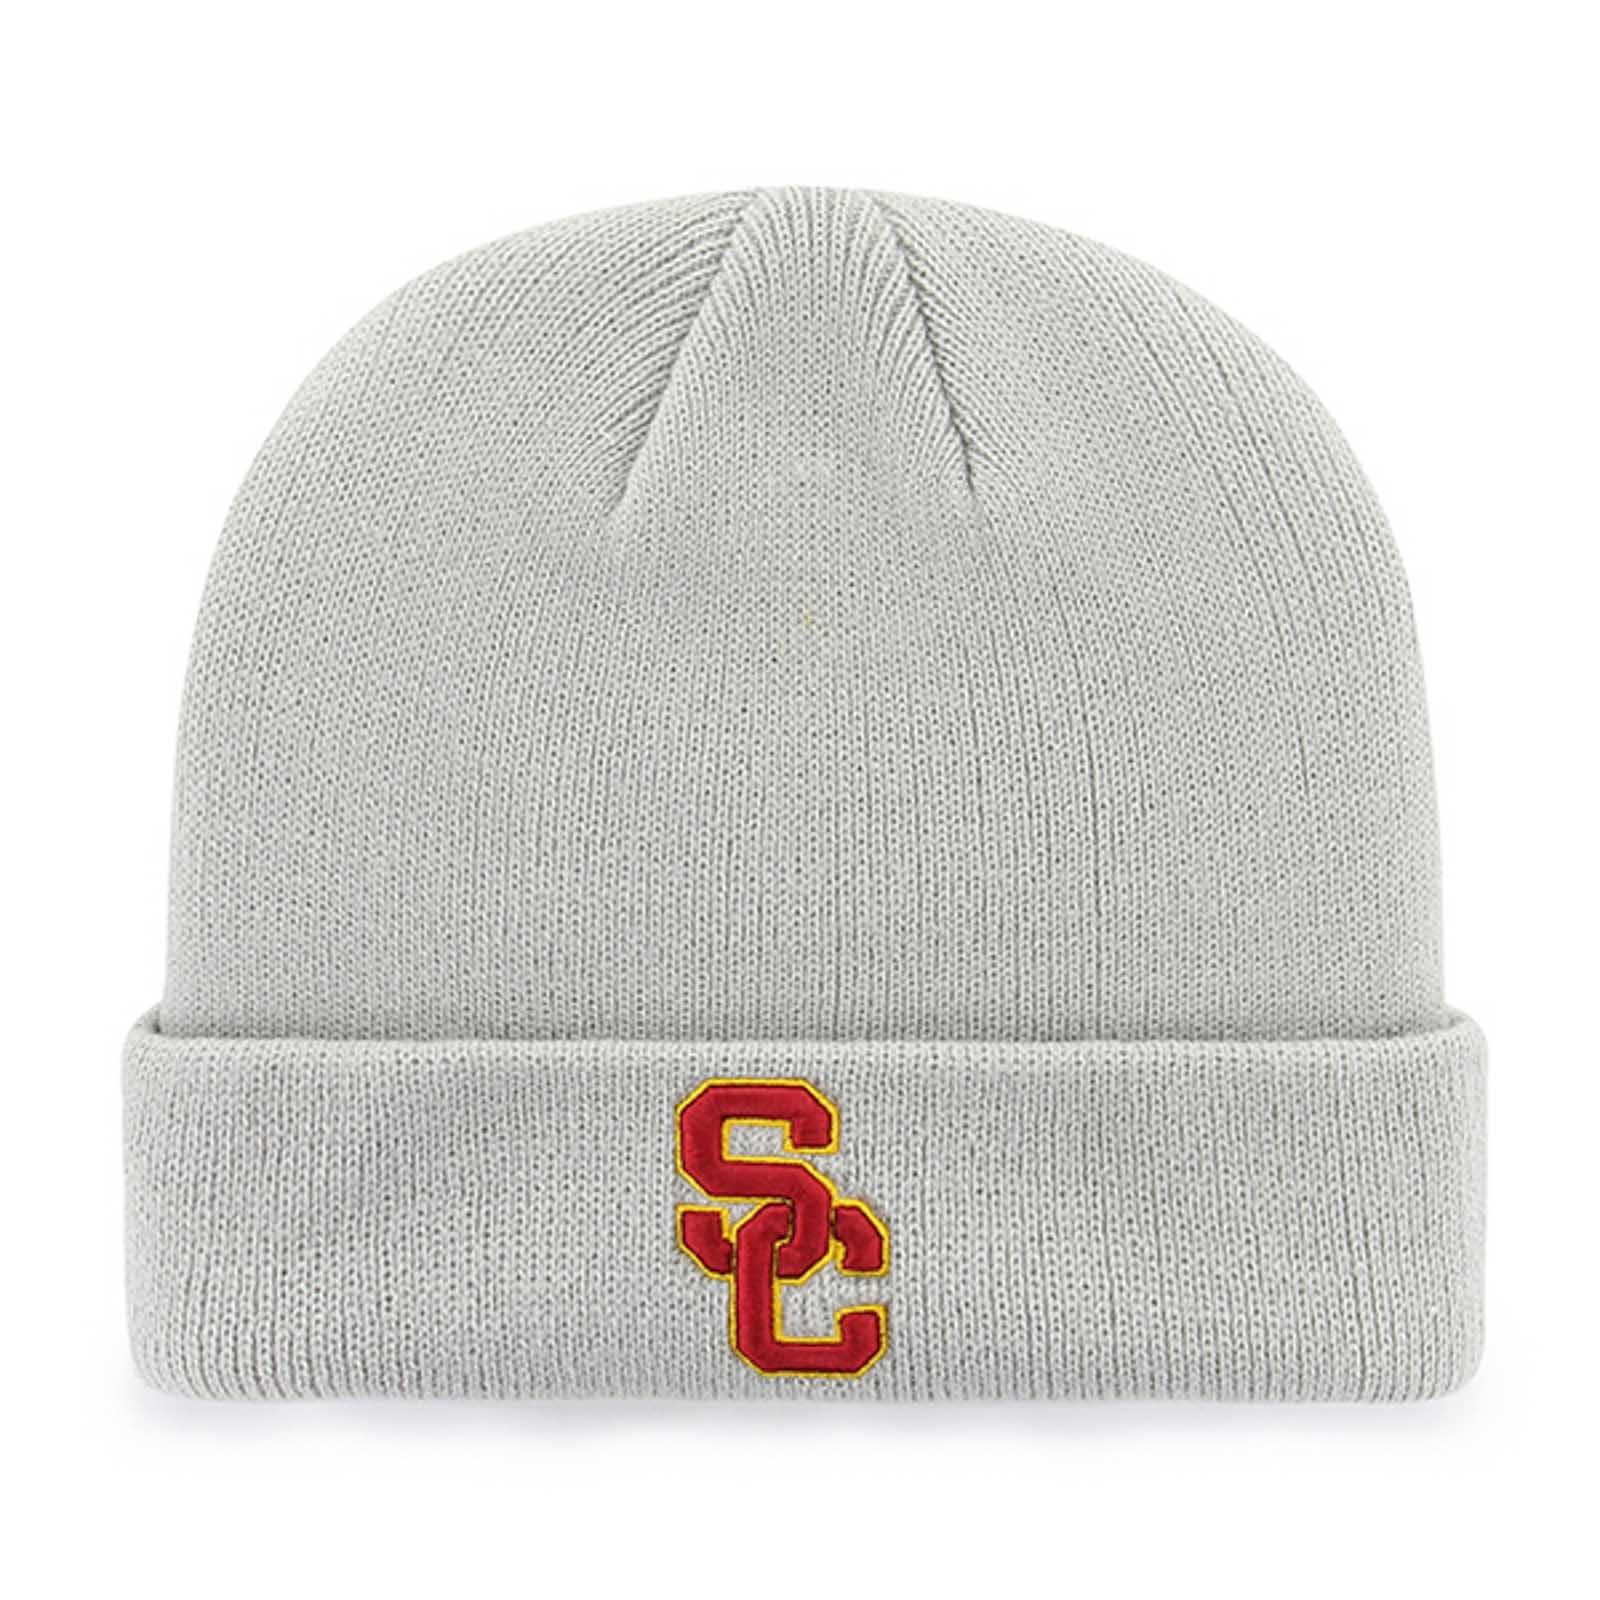 USC SC Interlock Raised Cuff Knit Beanie